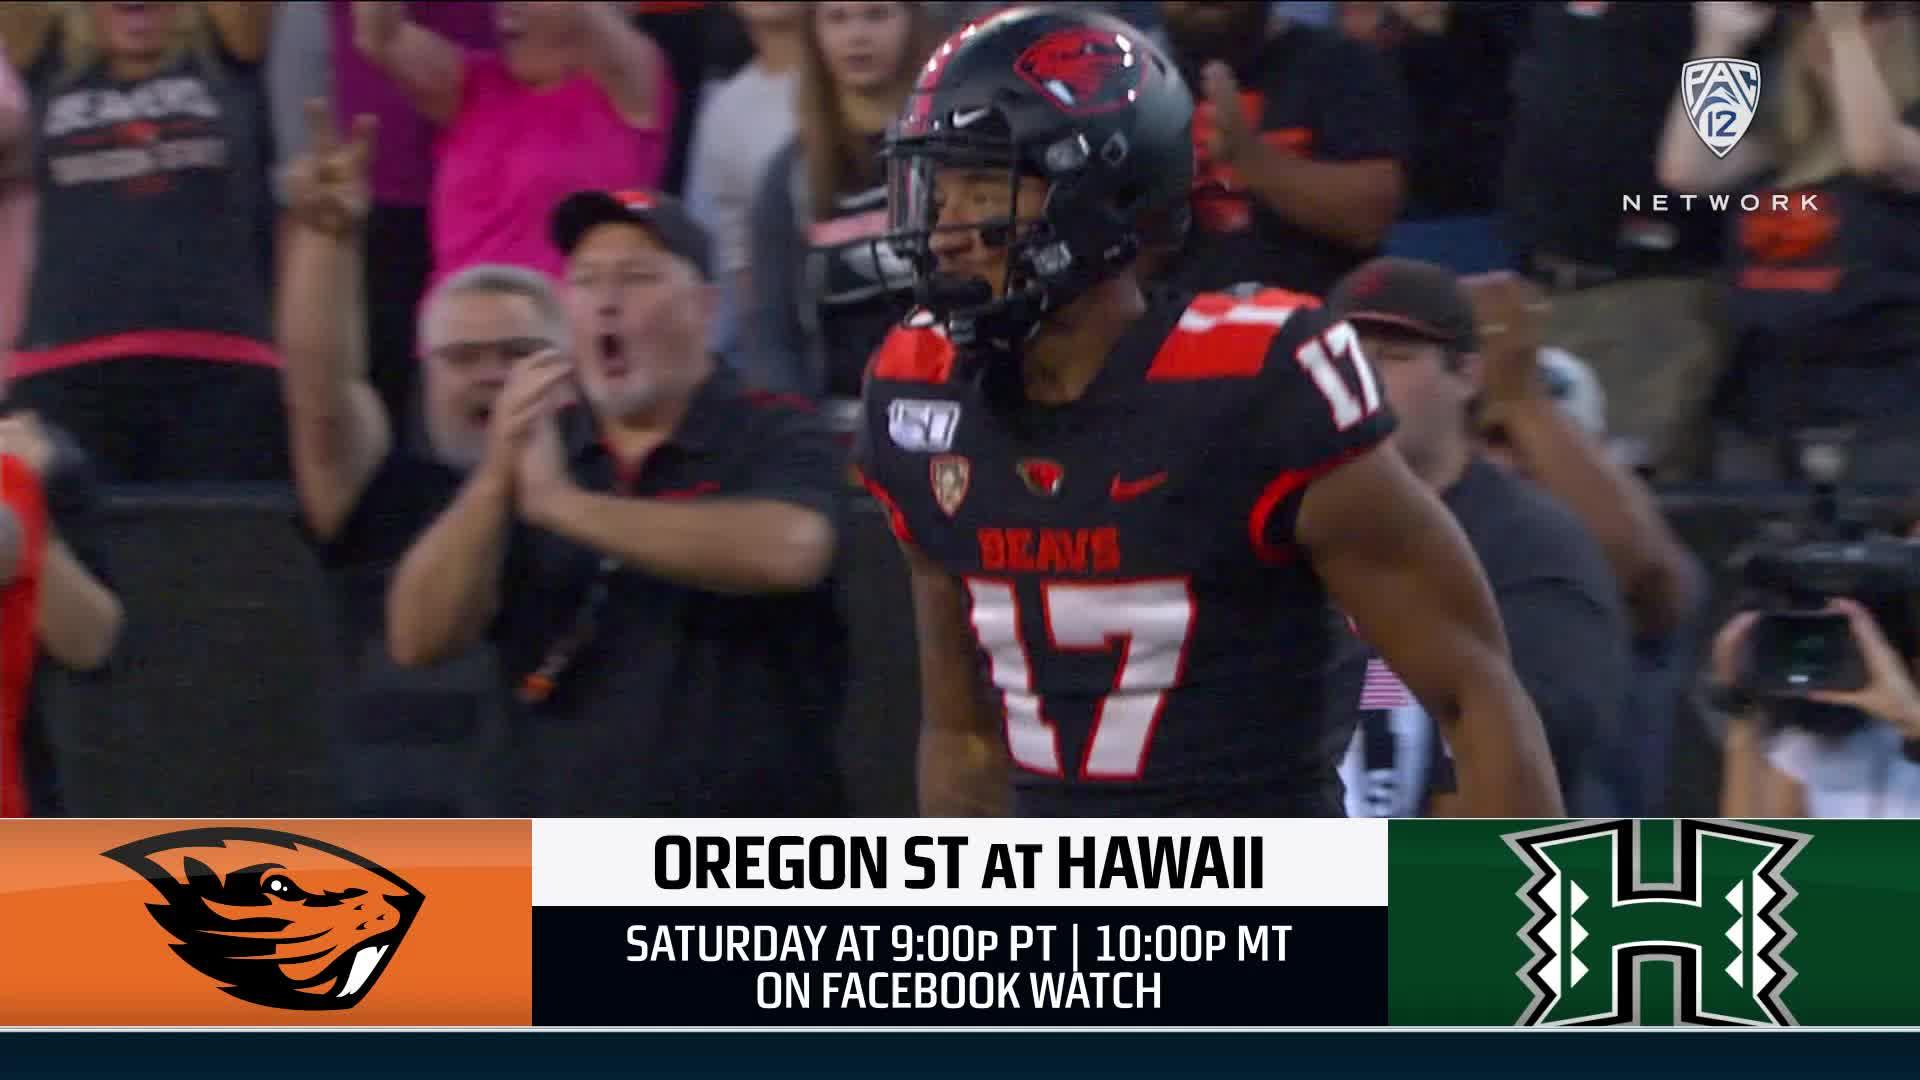 Oregon State-Hawai'i football game preview